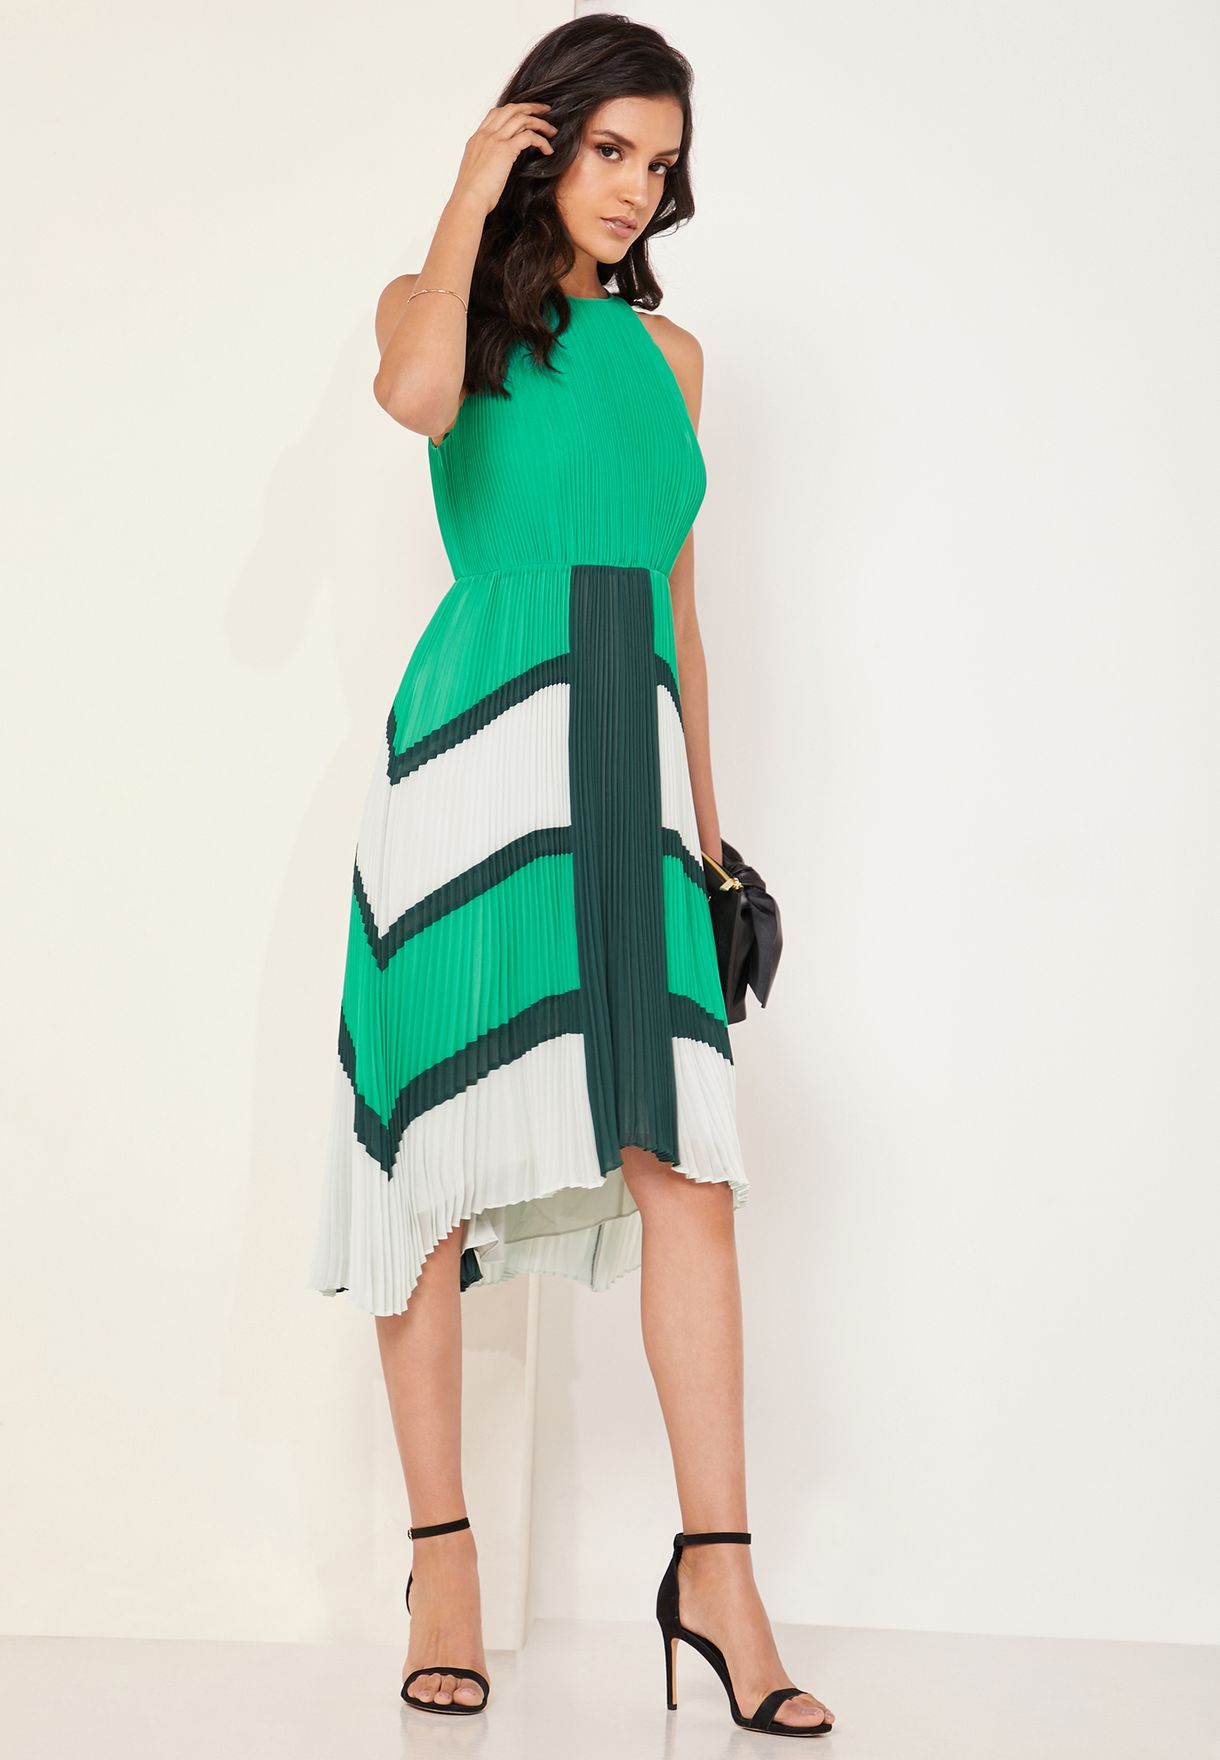 ad95456a7b922 Shop Ted baker green Nellina Dip Hem Pleated Dress 155526 for Women ...